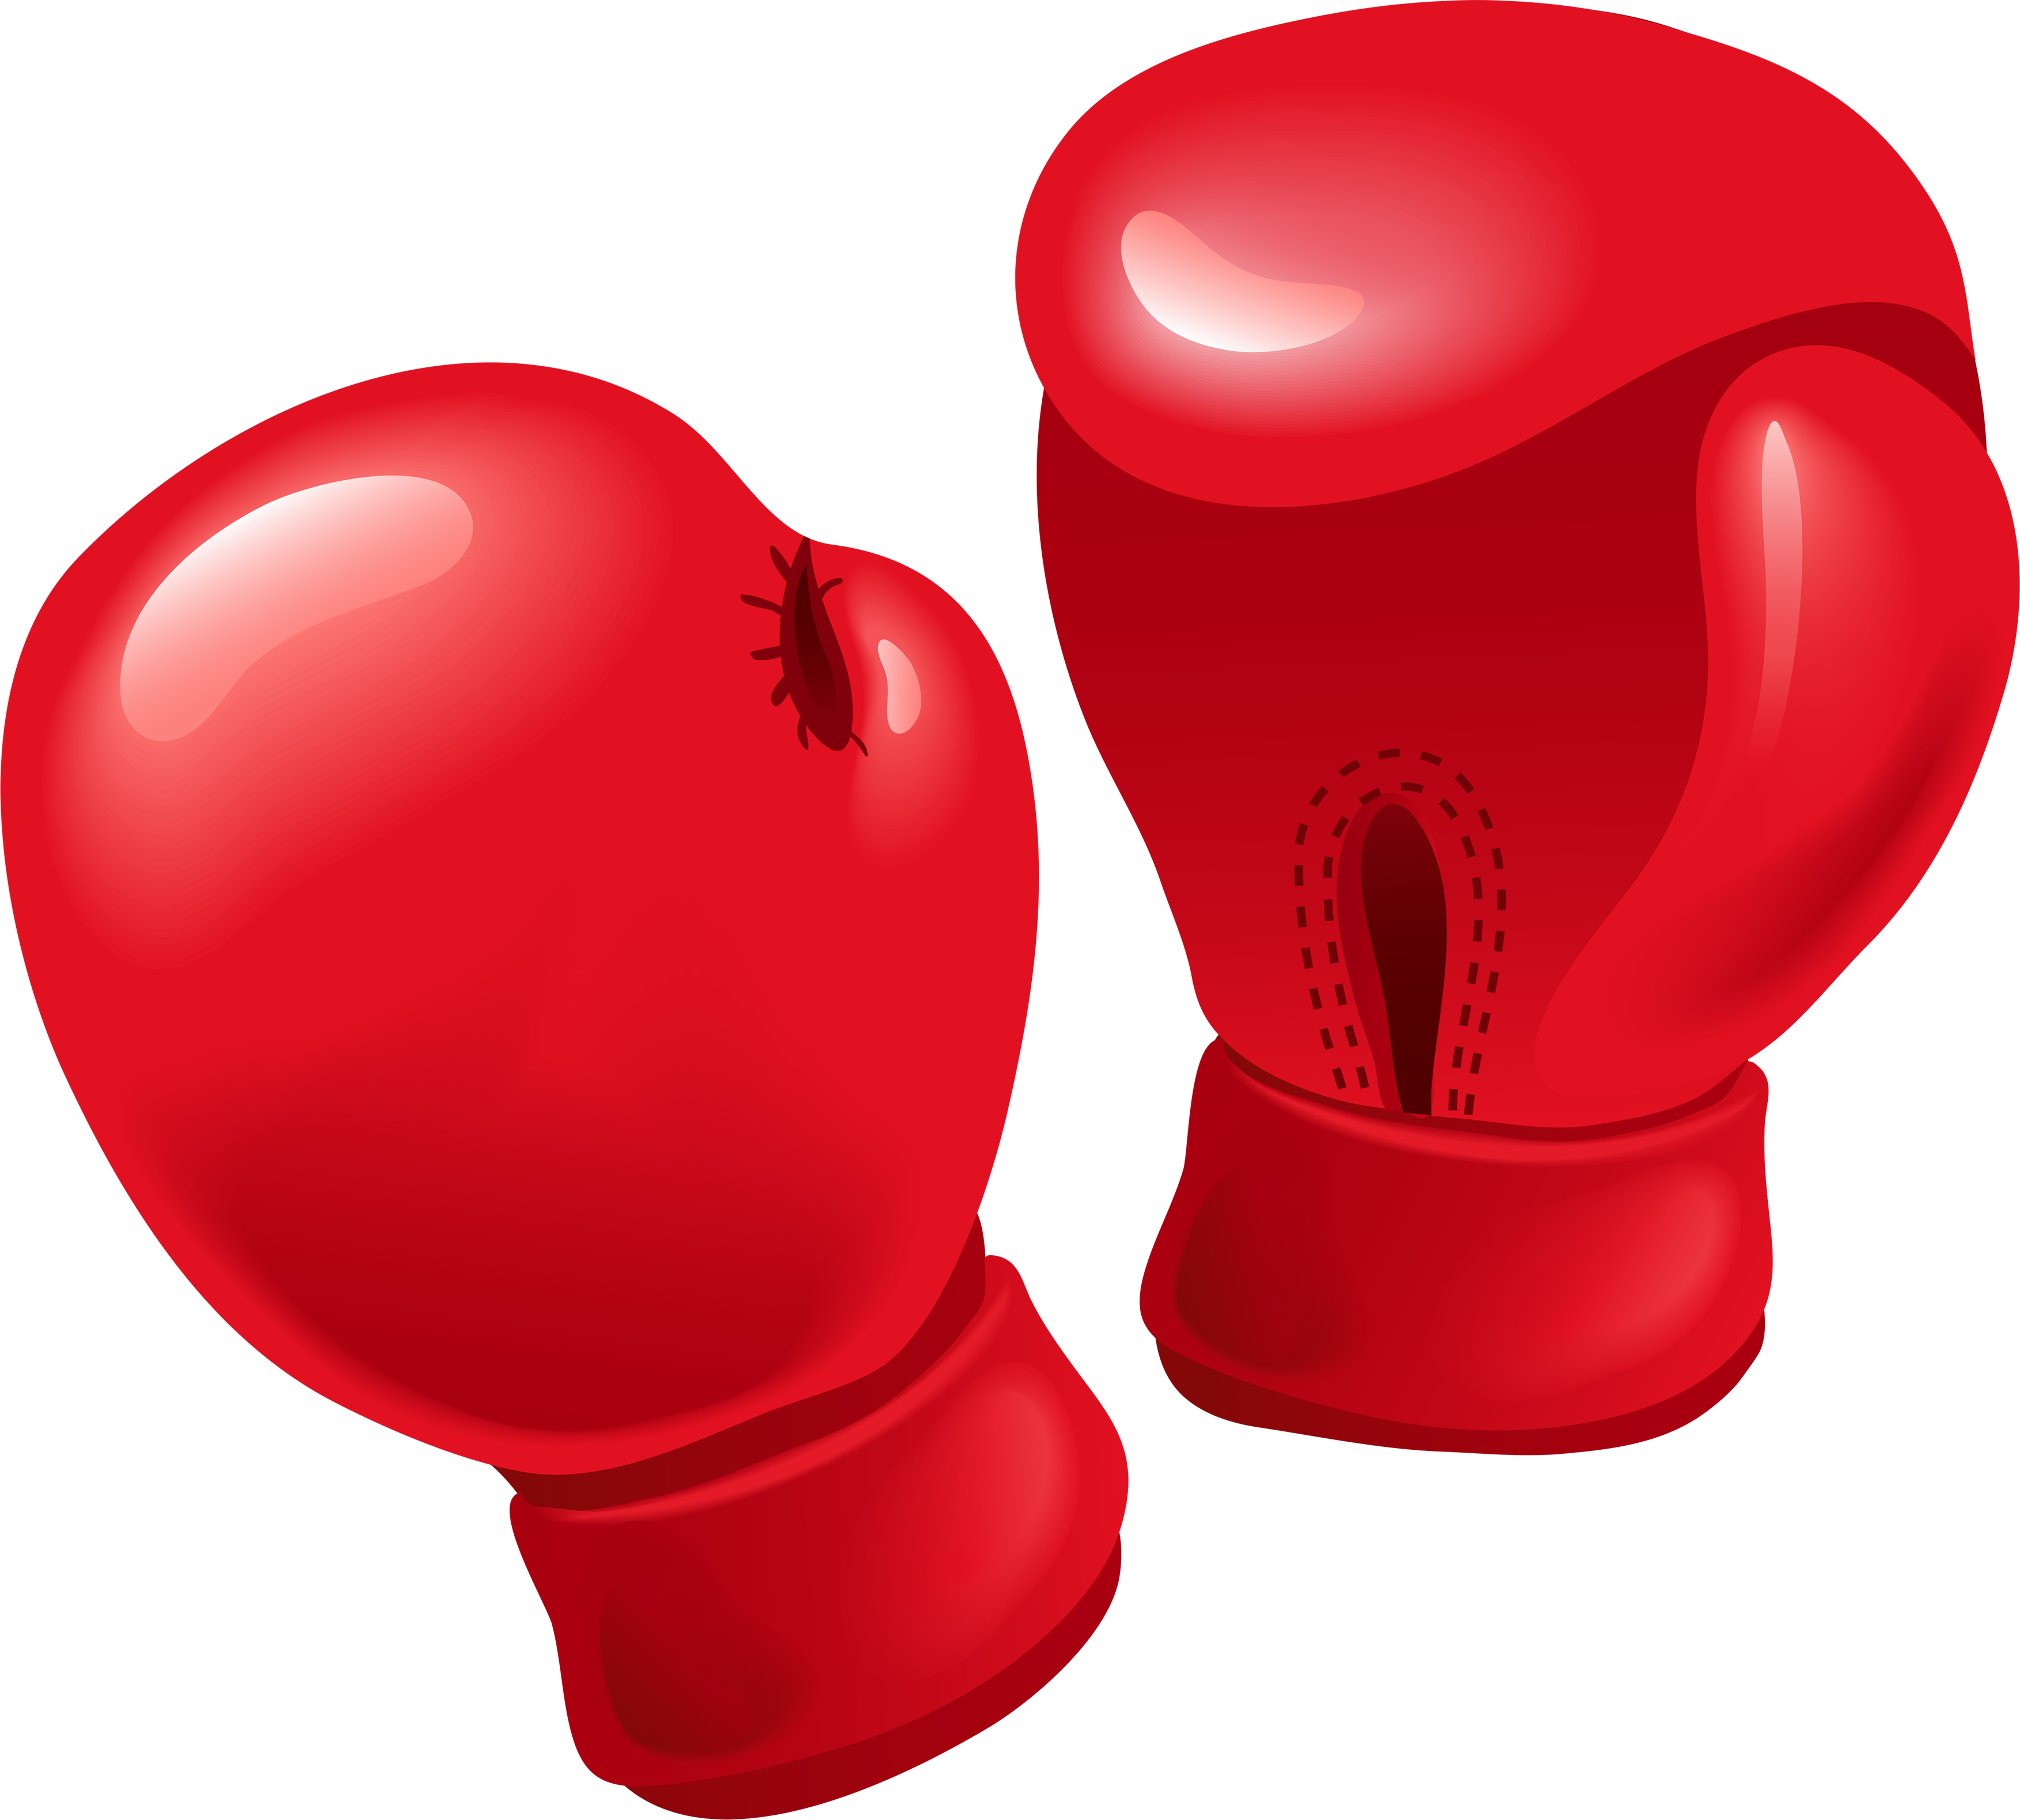 Red Boxing Gloves PNG Image - Boxing HD PNG